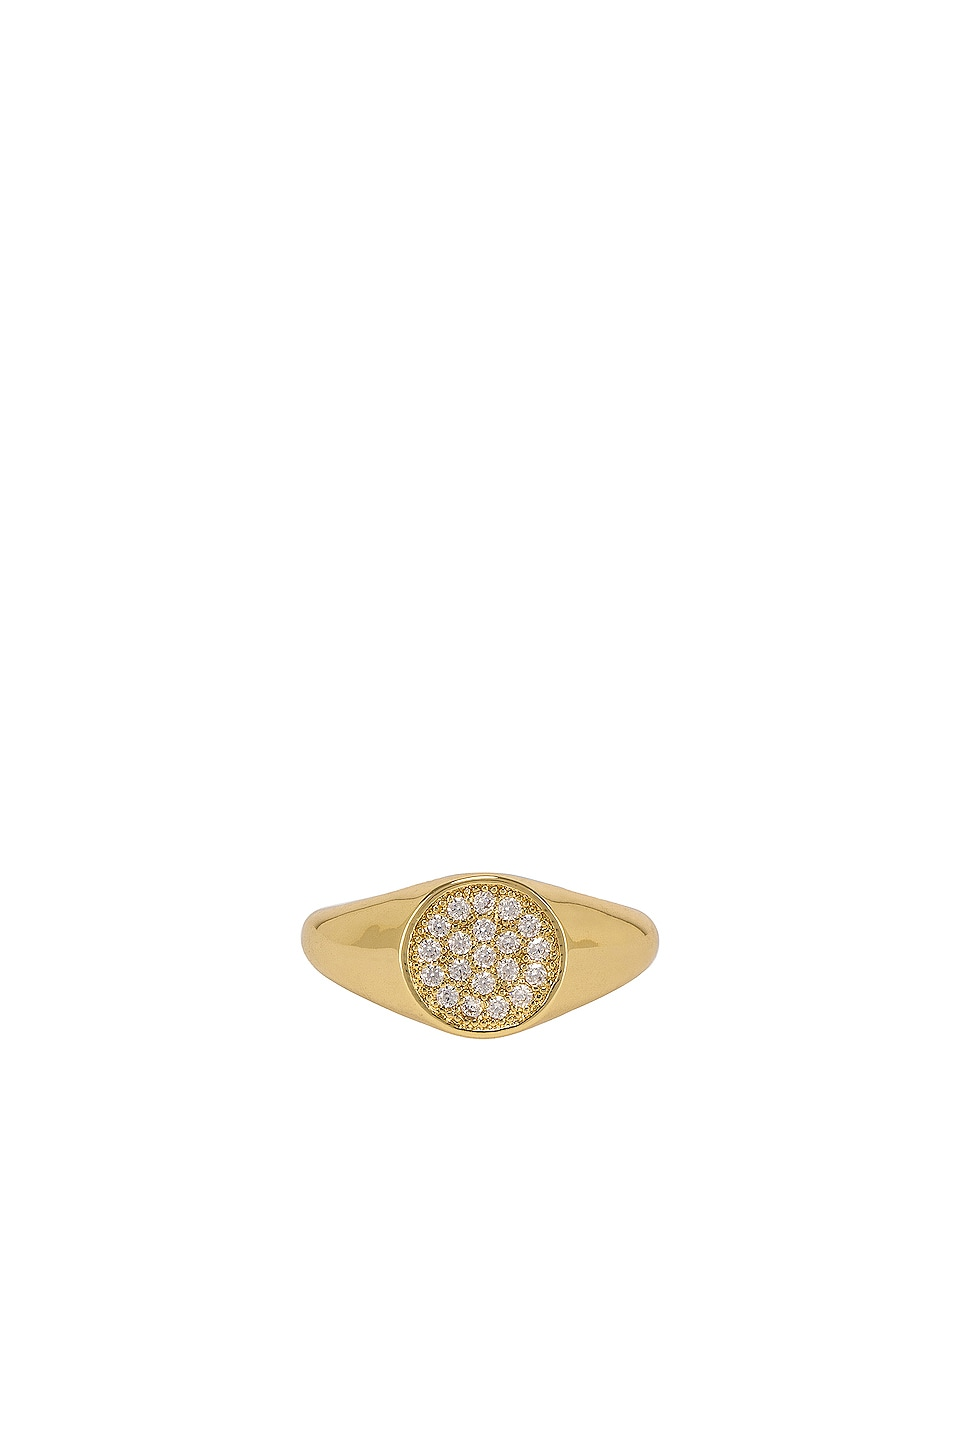 SHASHI Pave Signet Ring in Gold